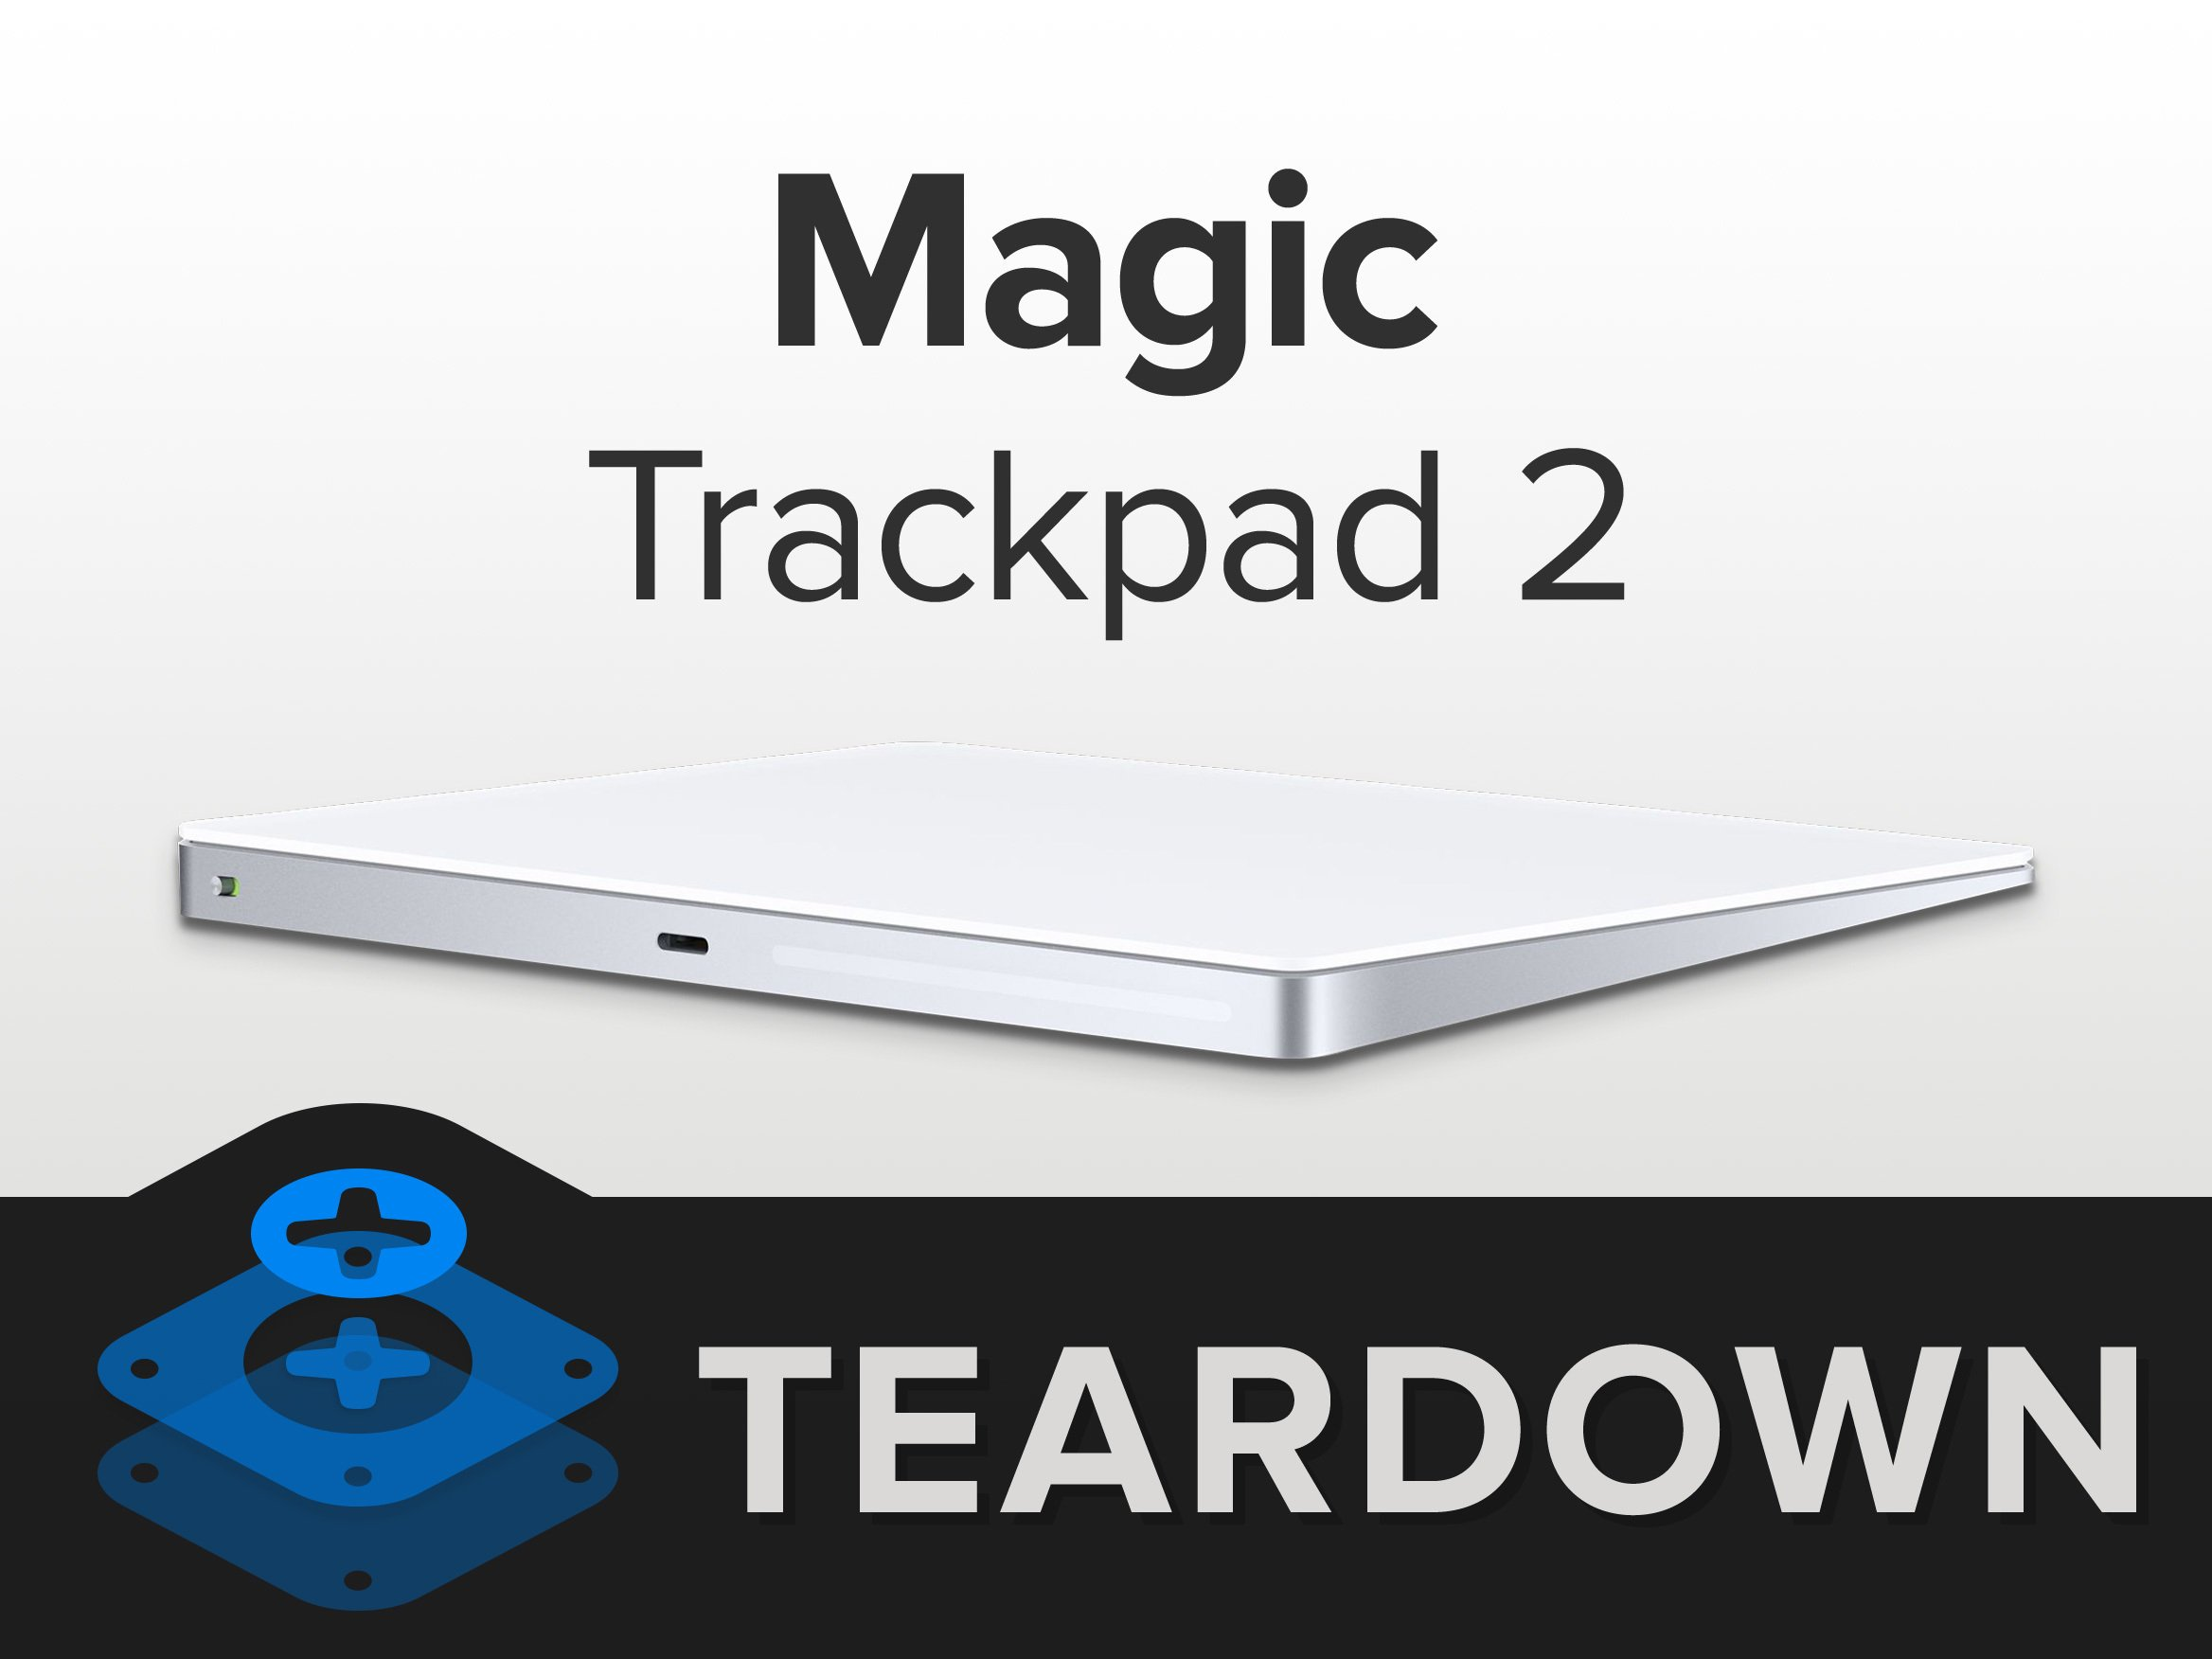 Magic Trackpad 2 Teardown on